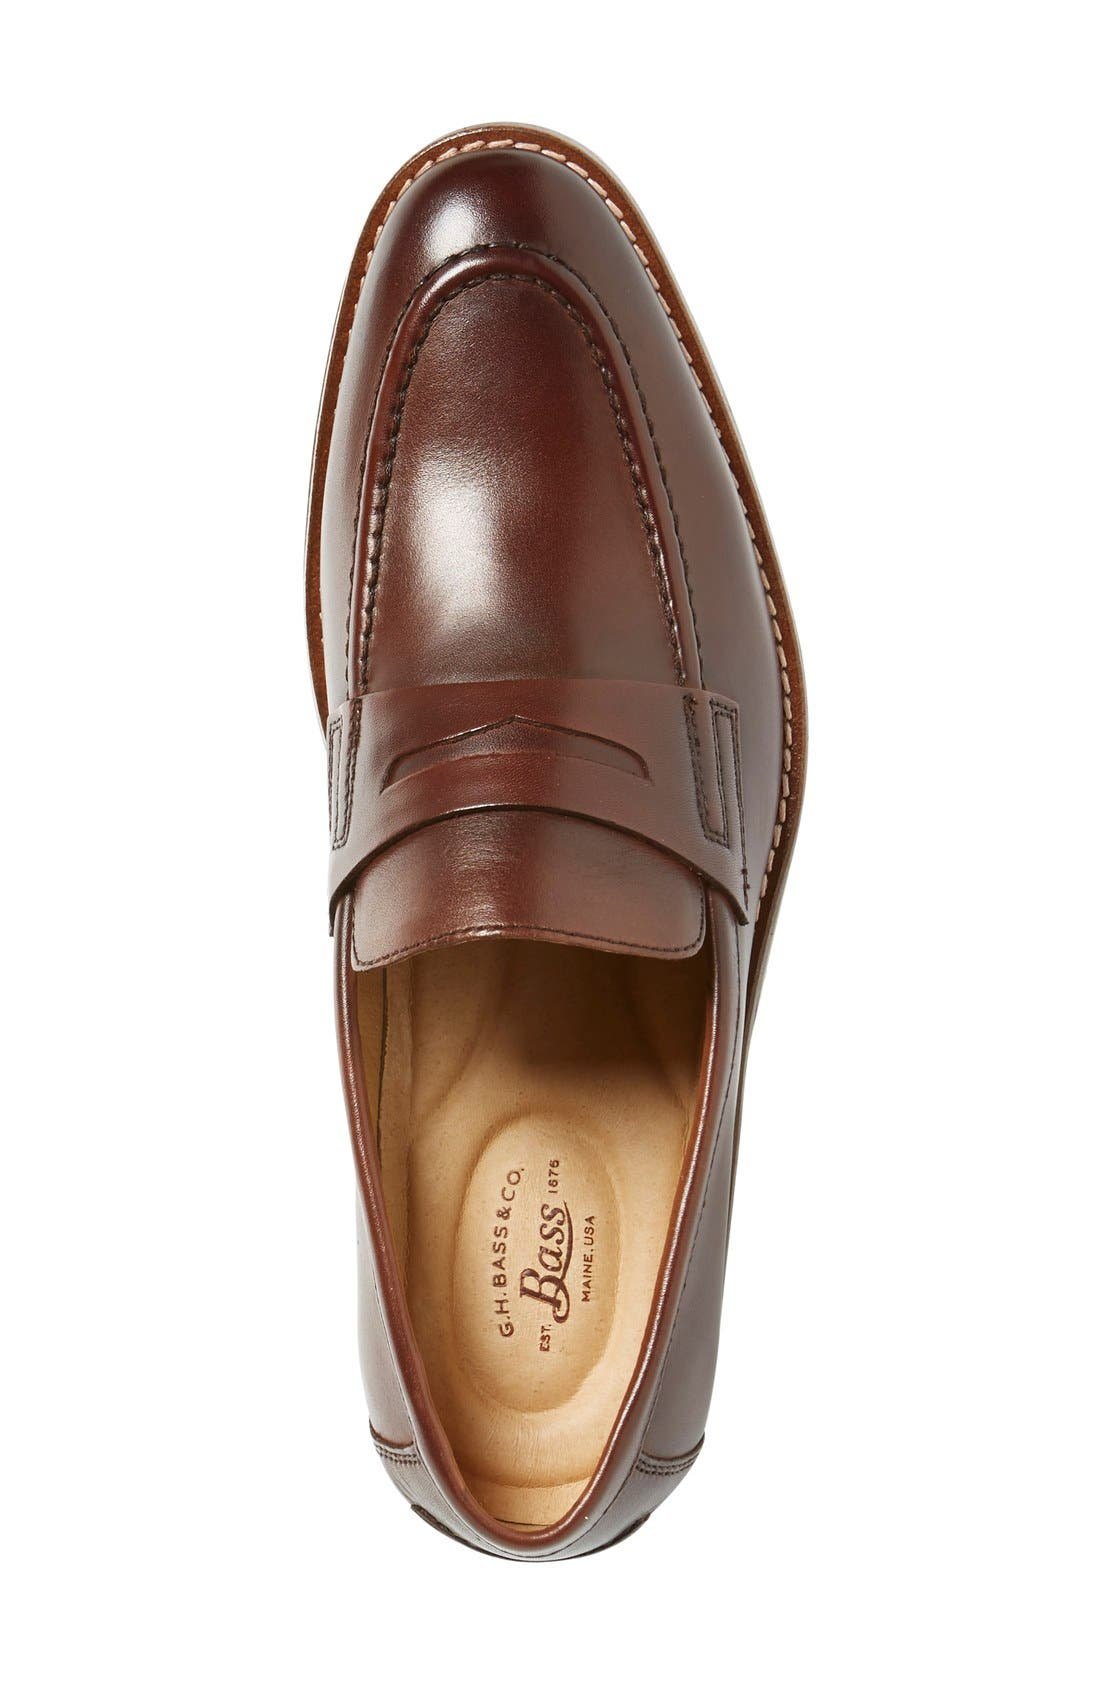 'Conner' Penny Loafer,                             Alternate thumbnail 3, color,                             British Tan Leather